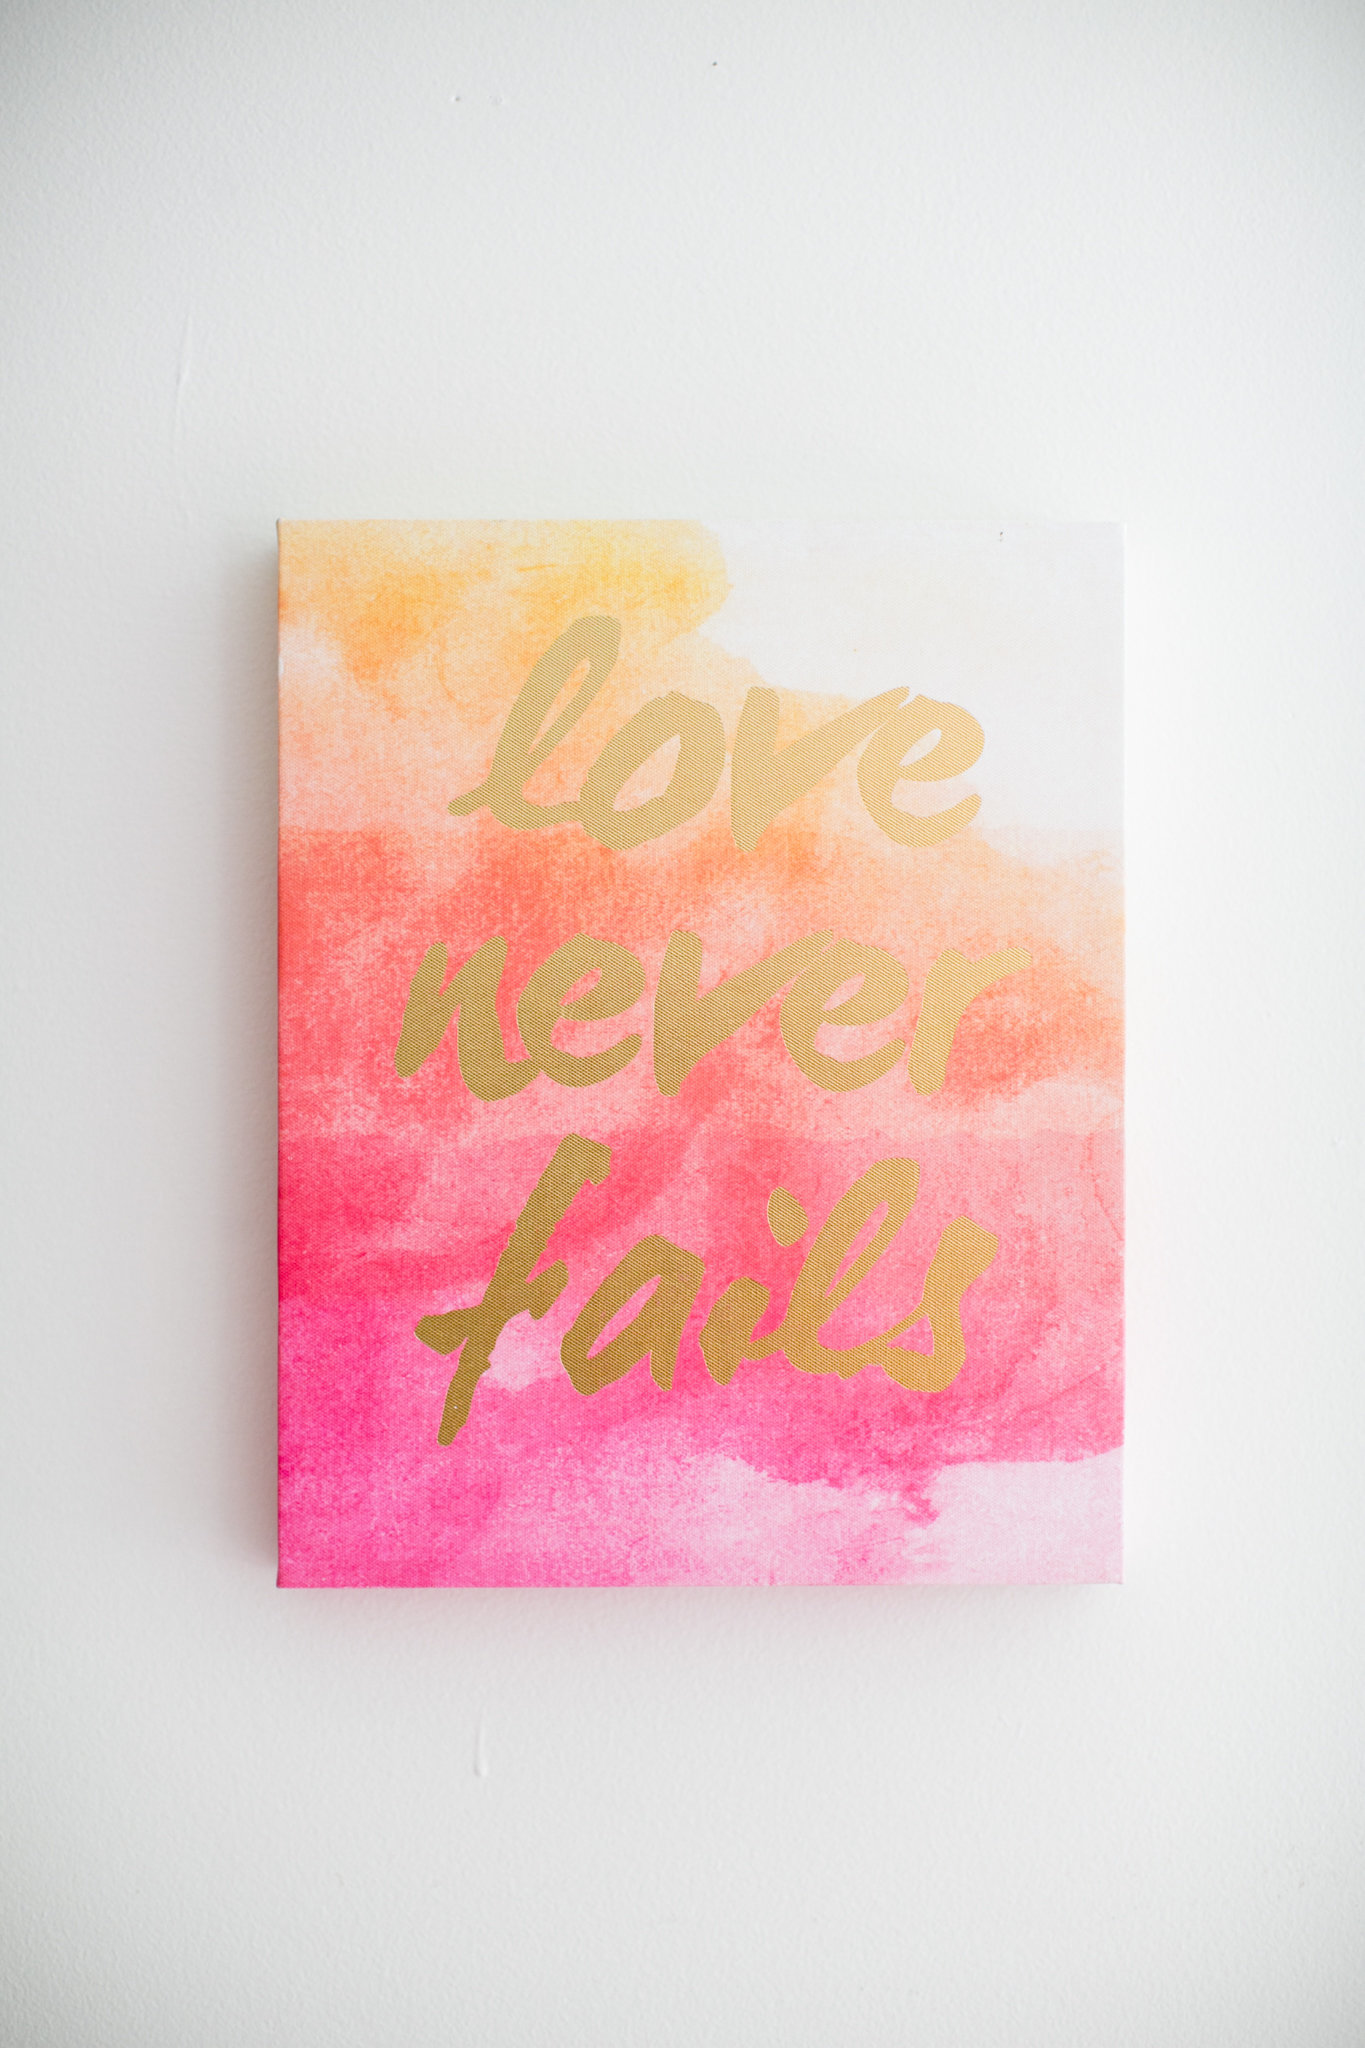 love never fails sign in gold lettering